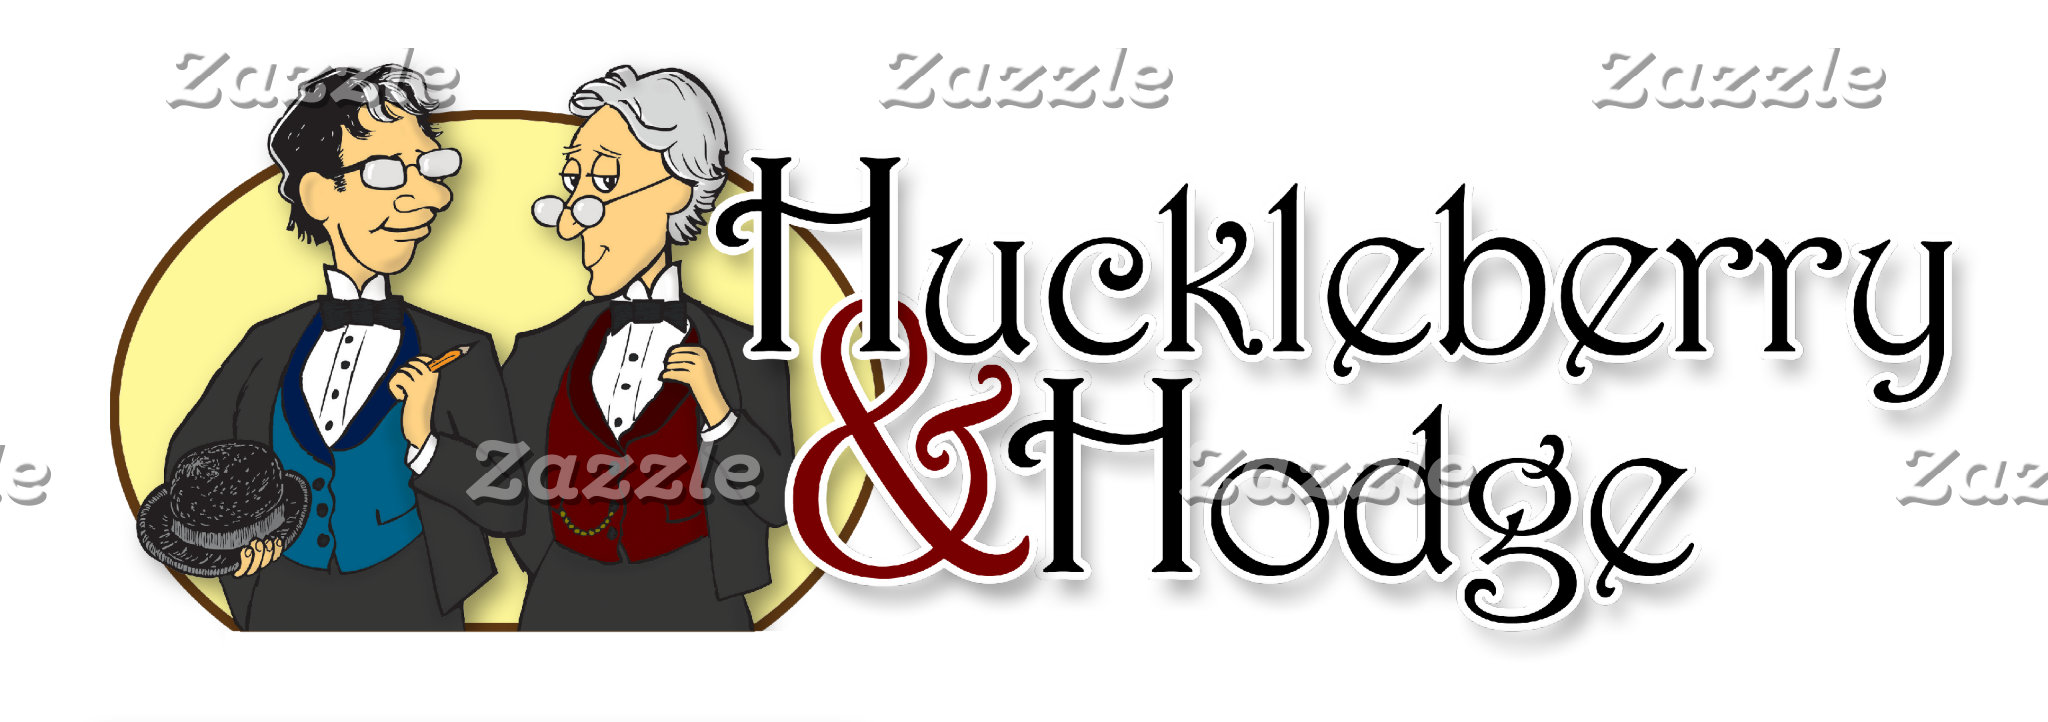 Huckleberry and Hodge